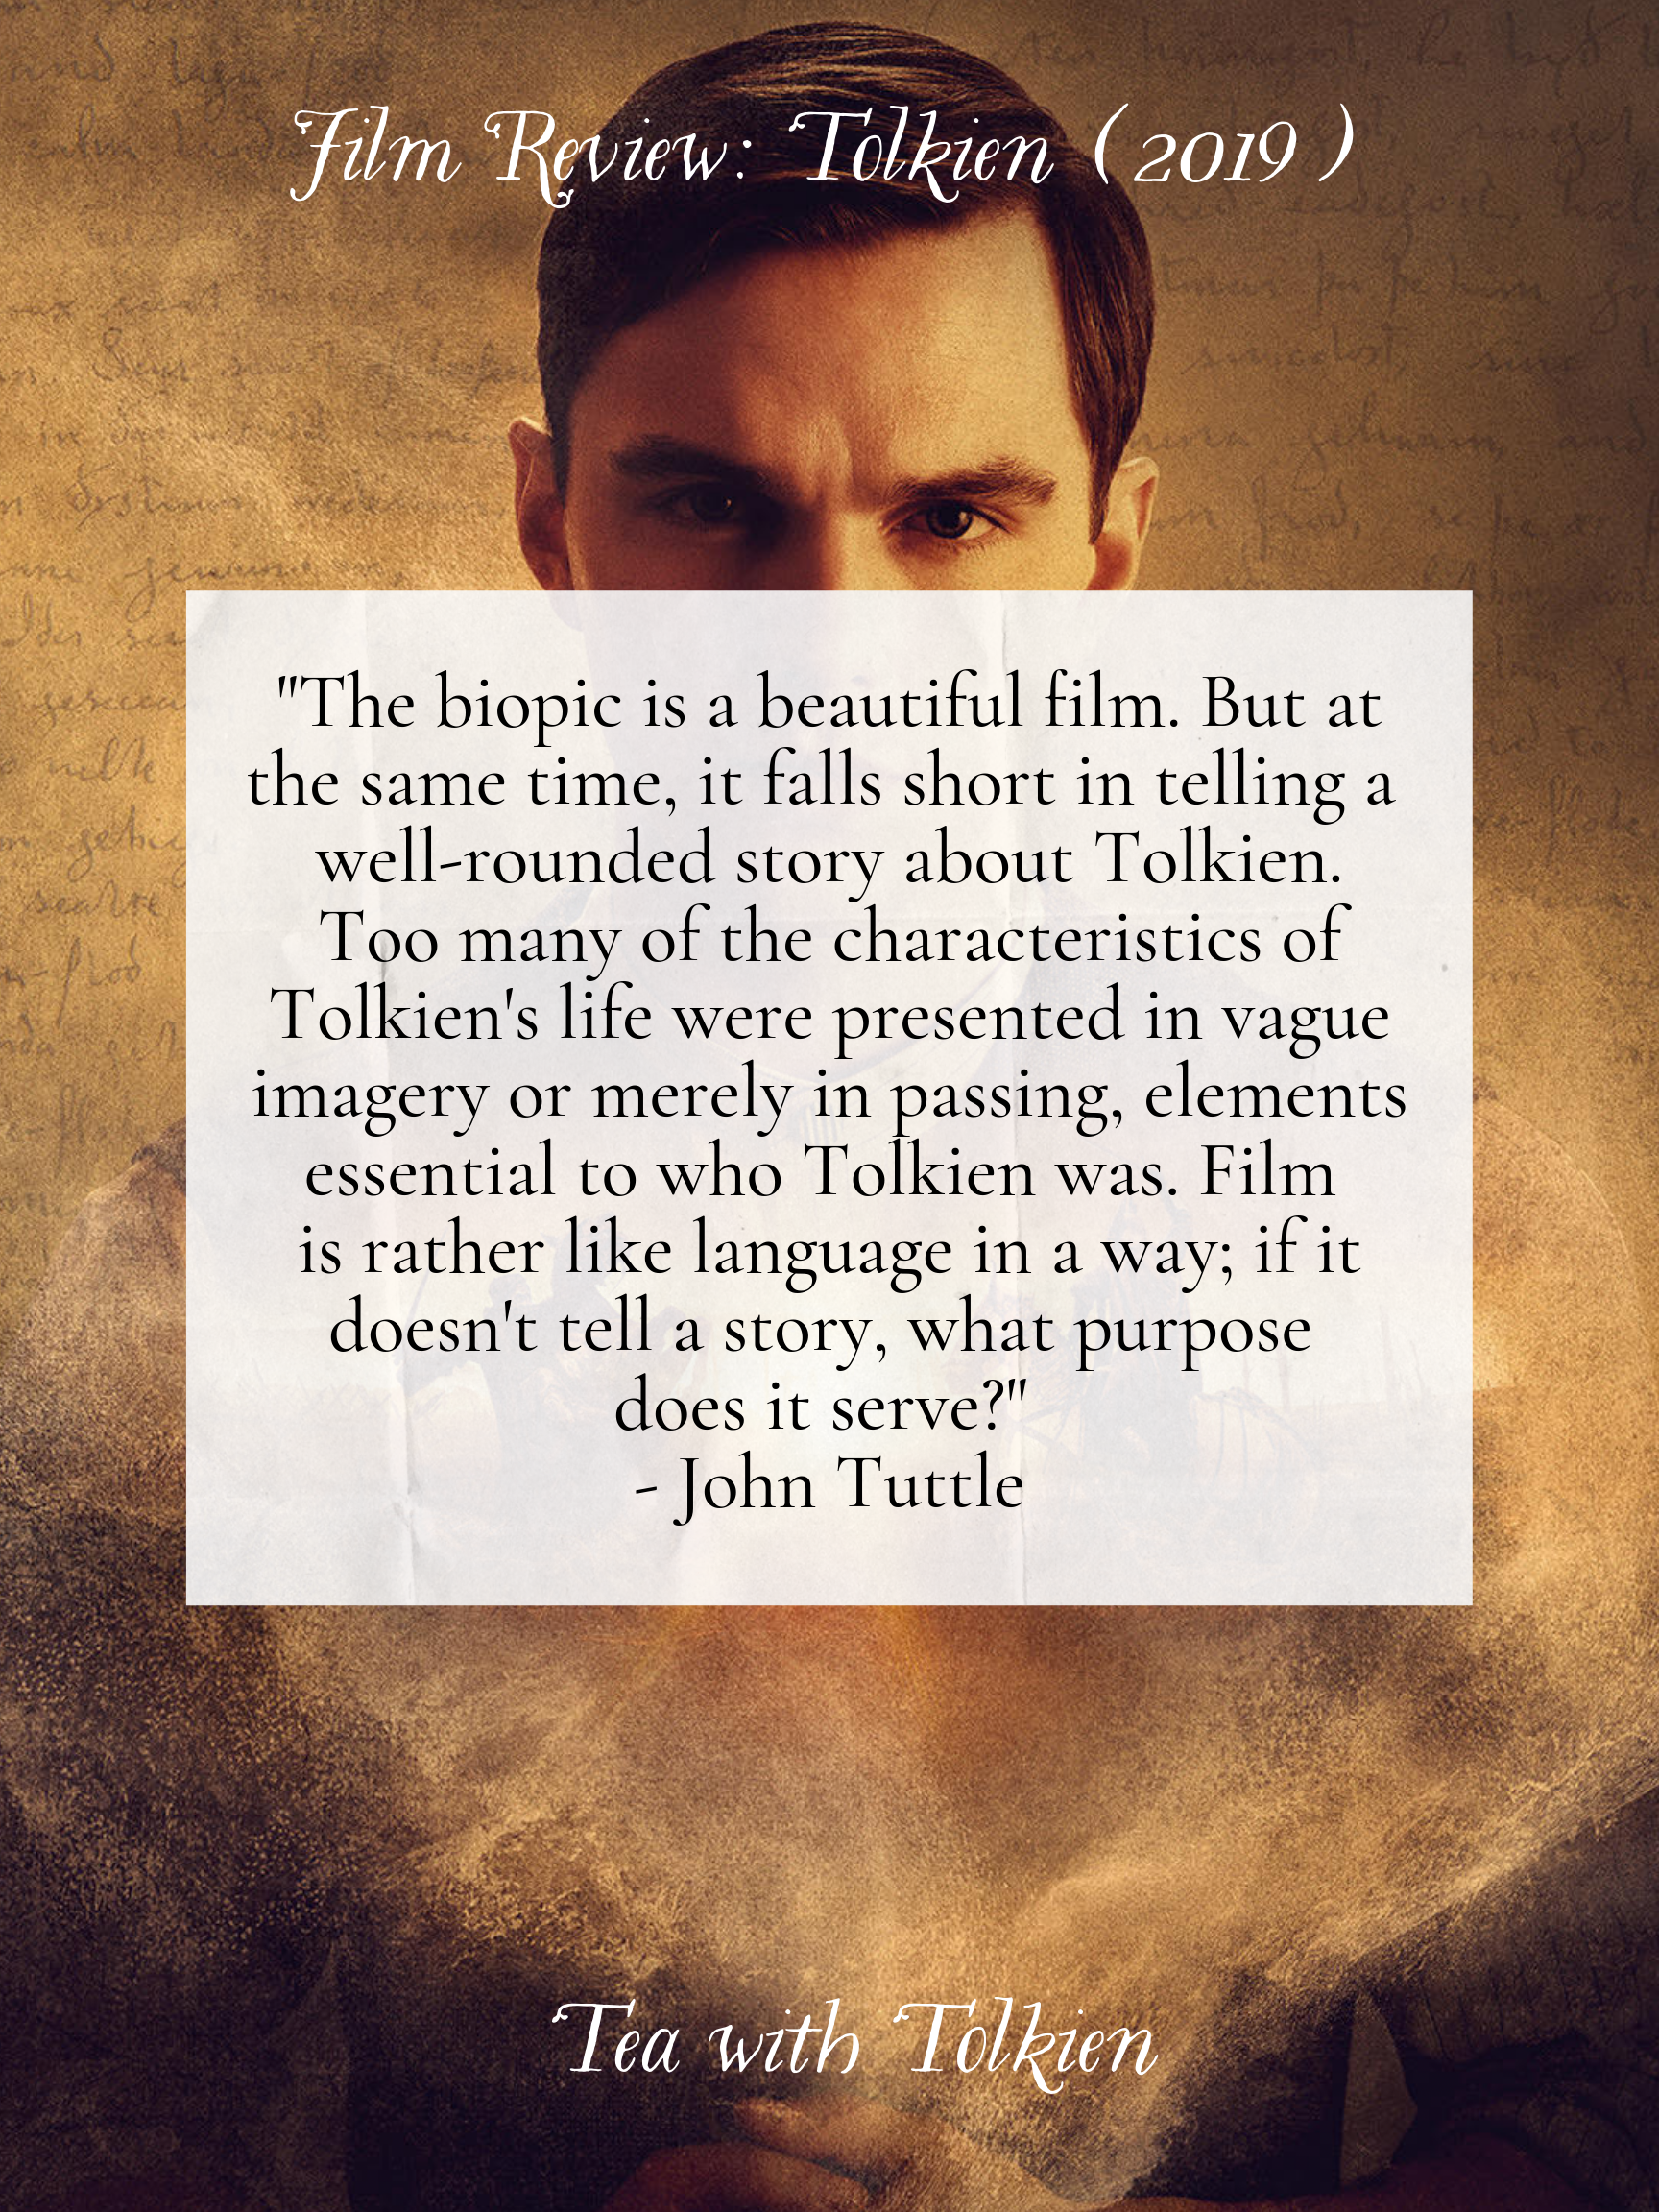 Film Review Tolkien.png